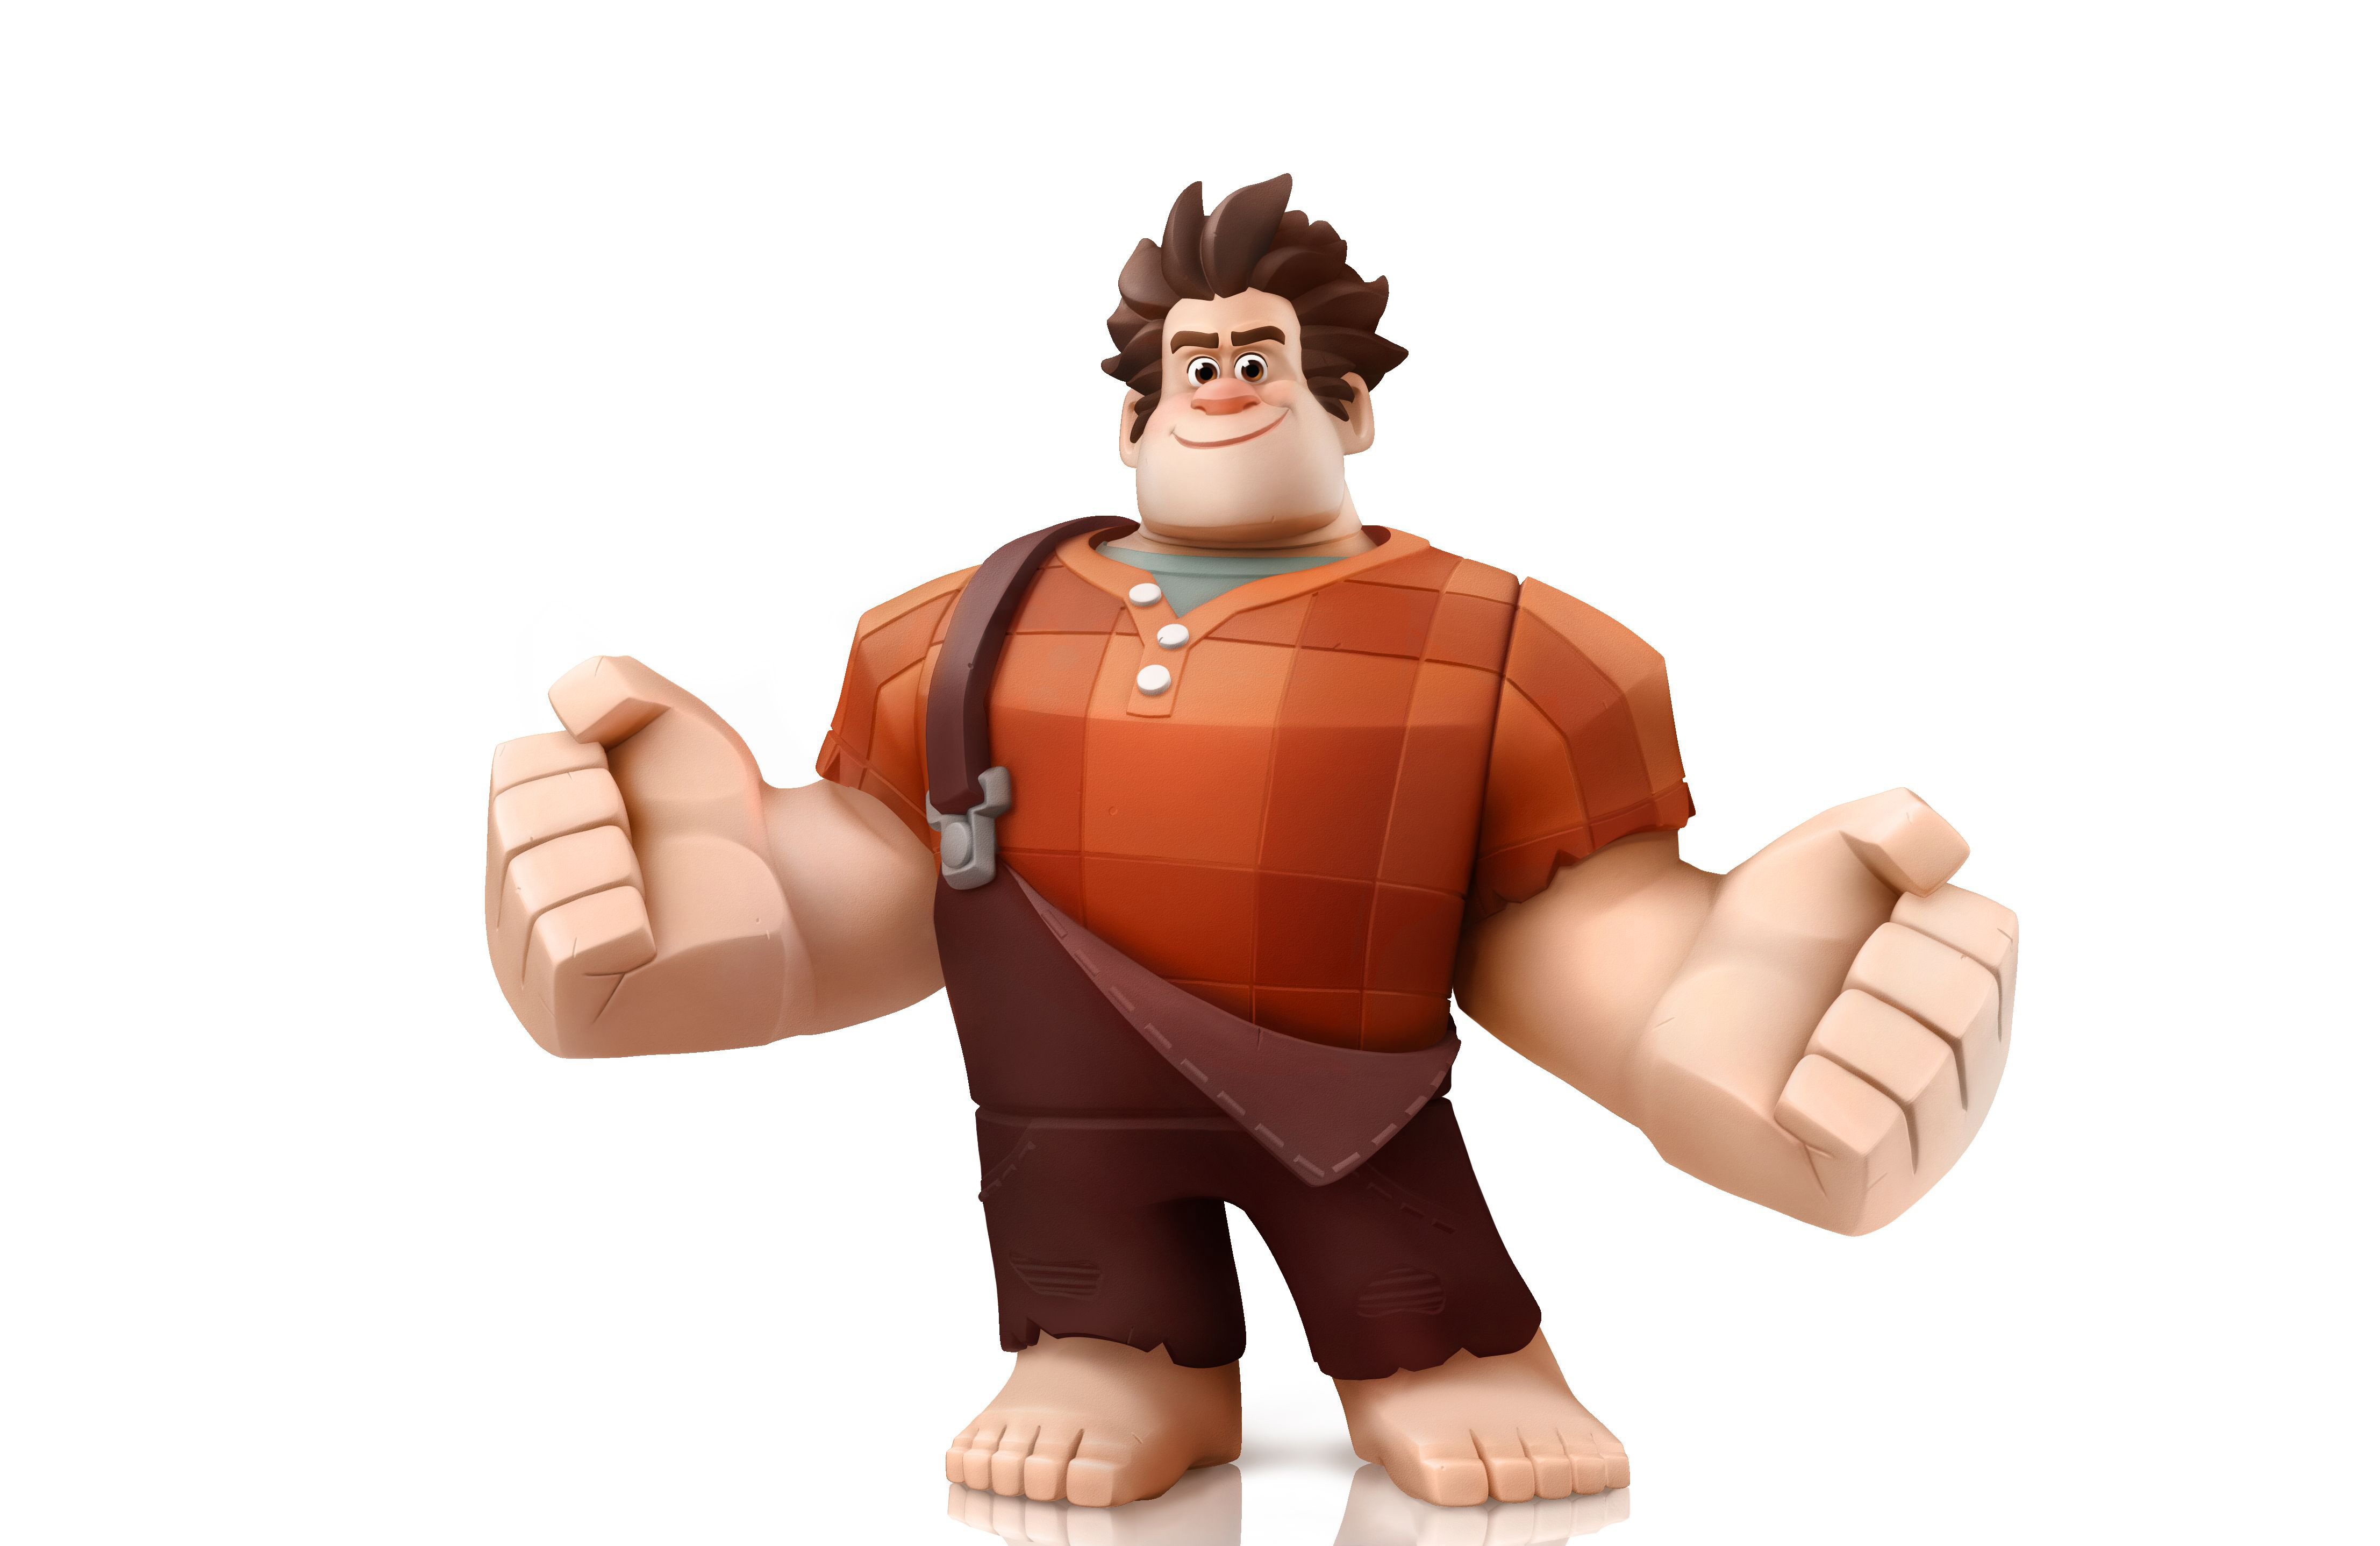 Wreck It Ralph Animation Movie 4k Hd Desktop Wallpaper For: Ralph 4k, HD Movies, 4k Wallpapers, Images, Backgrounds